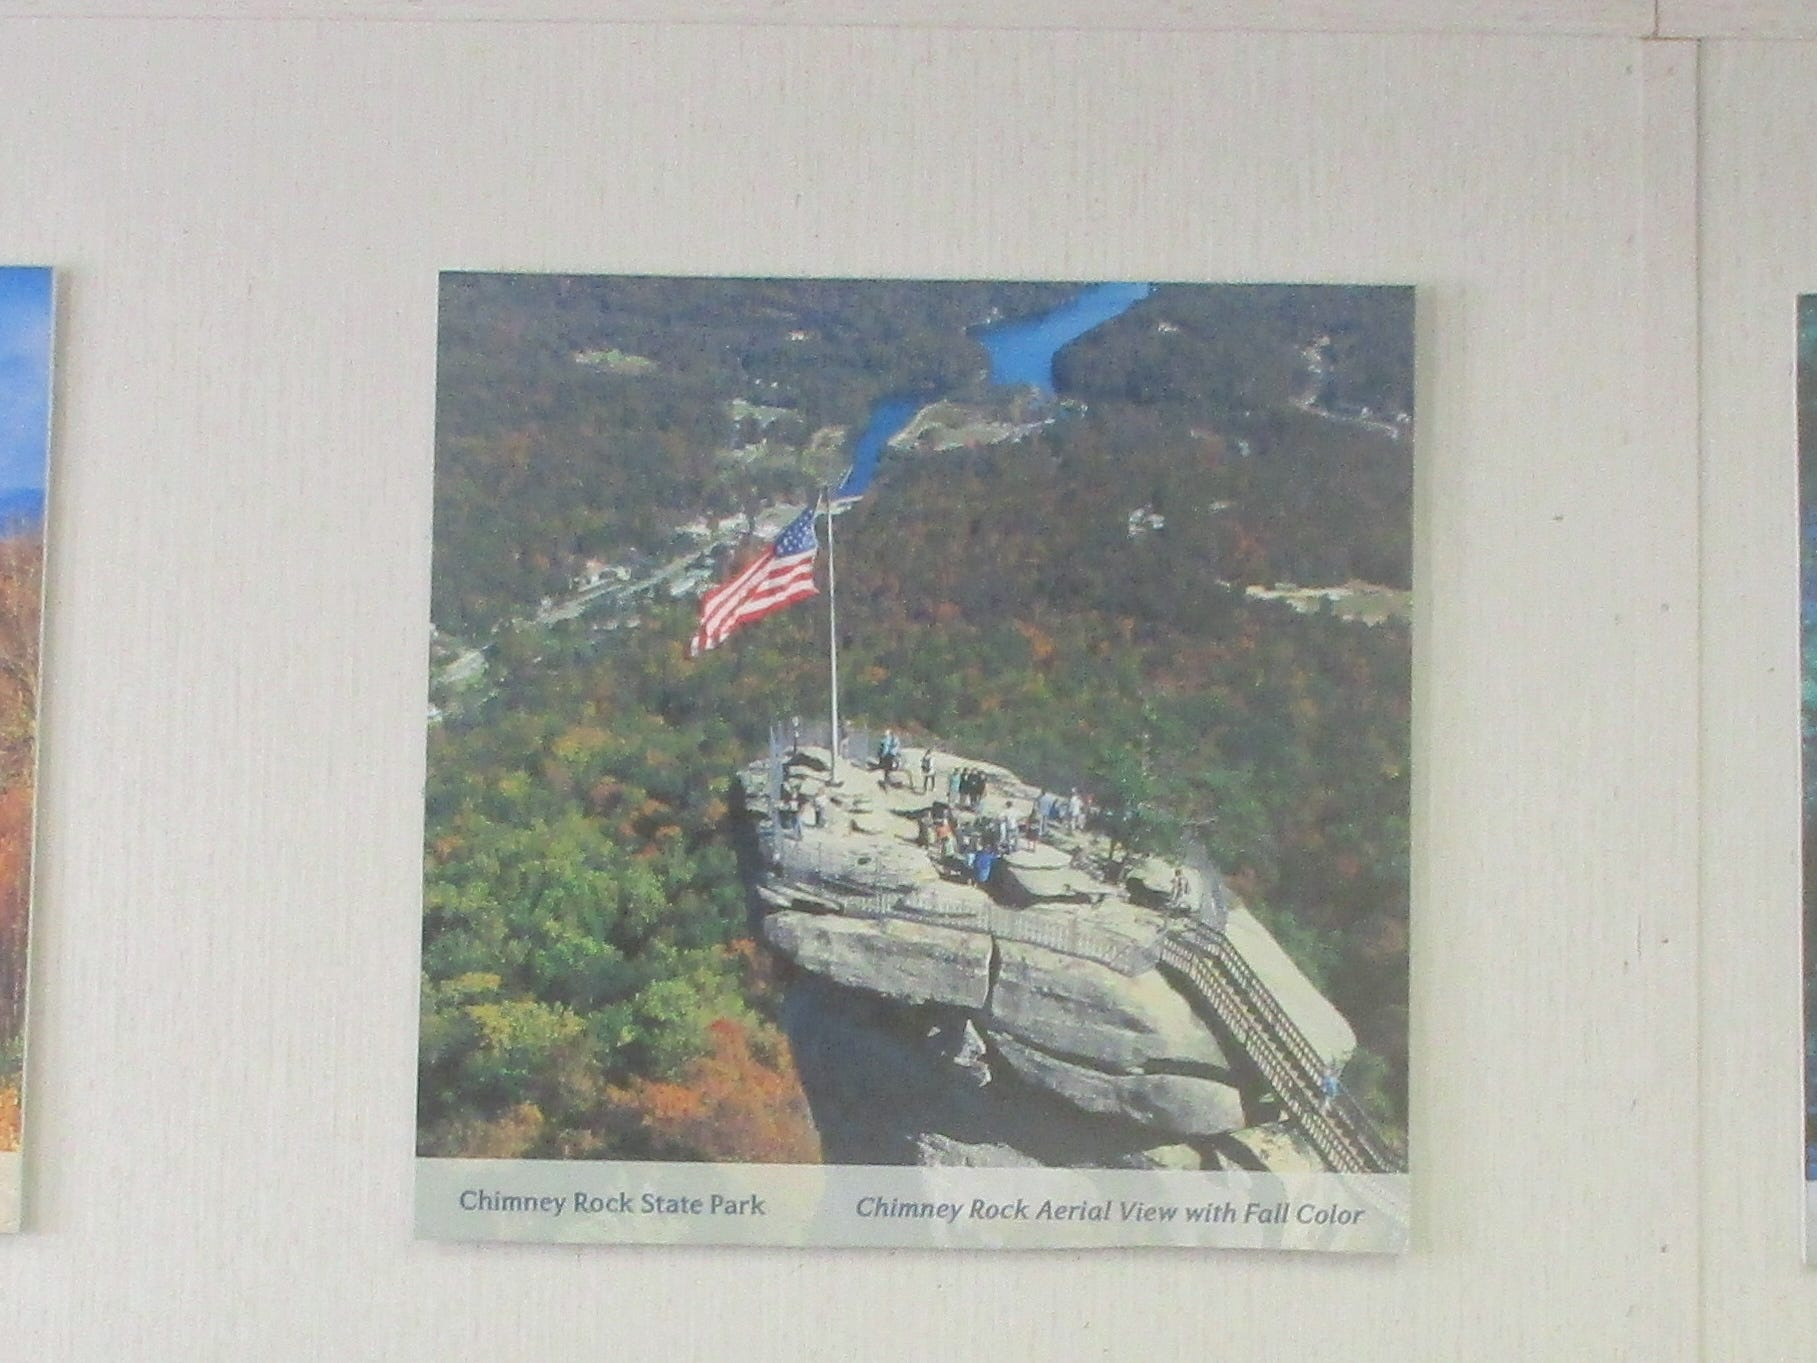 Walls in the call center are hung with photos showing some of North Carolina's major tourist attractions.